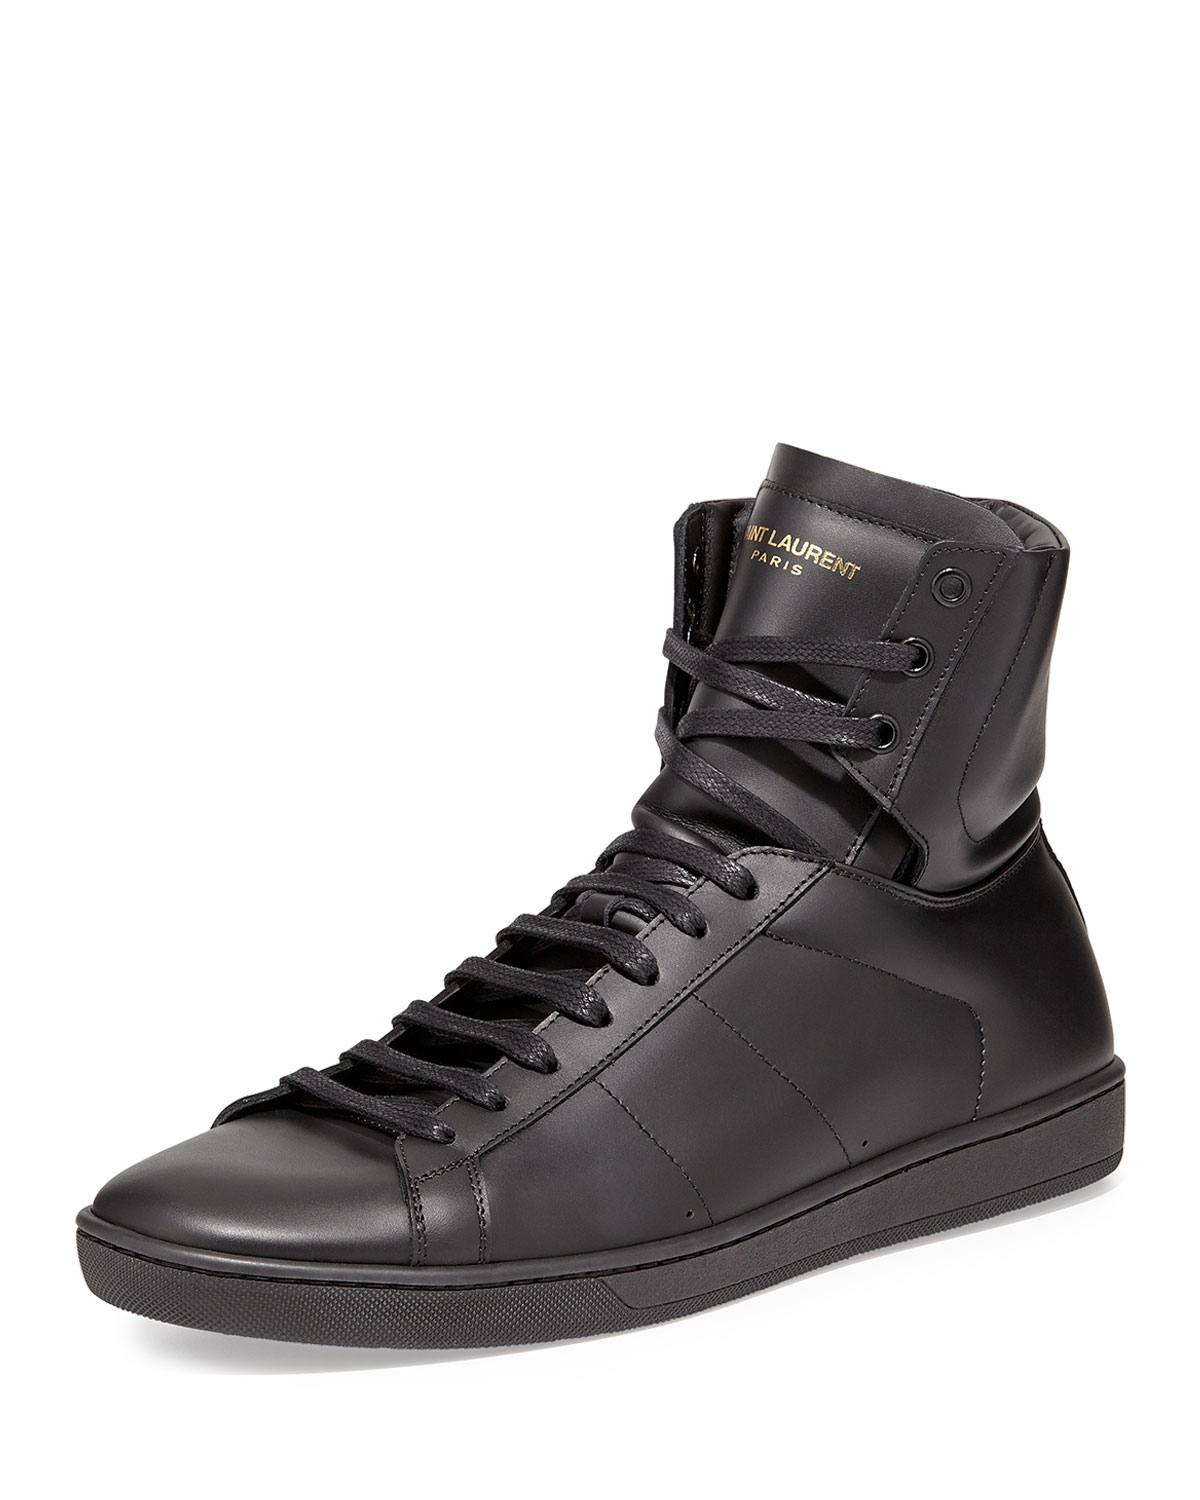 Find great deals on eBay for mens leather high top sneakers. Shop with confidence.